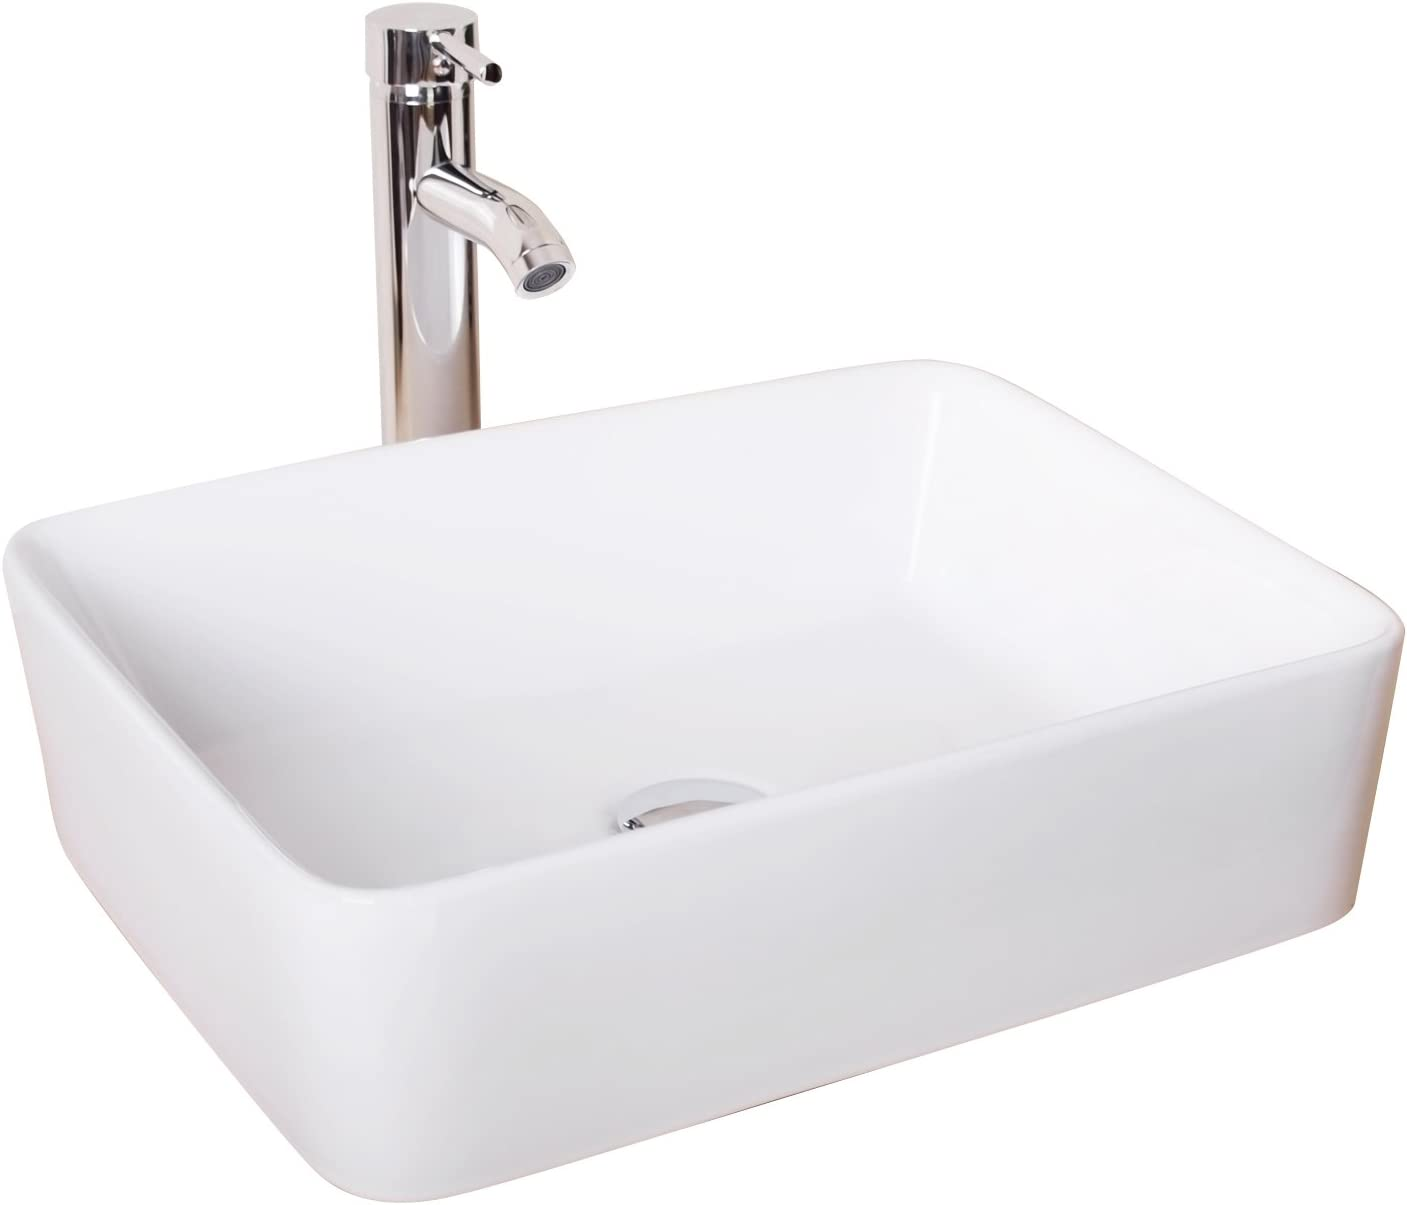 Sliverylake Bathroom Rectangle Porcelain Vessel Sink White Ceramic Sink Basin Chrome Drain Faucet Combo